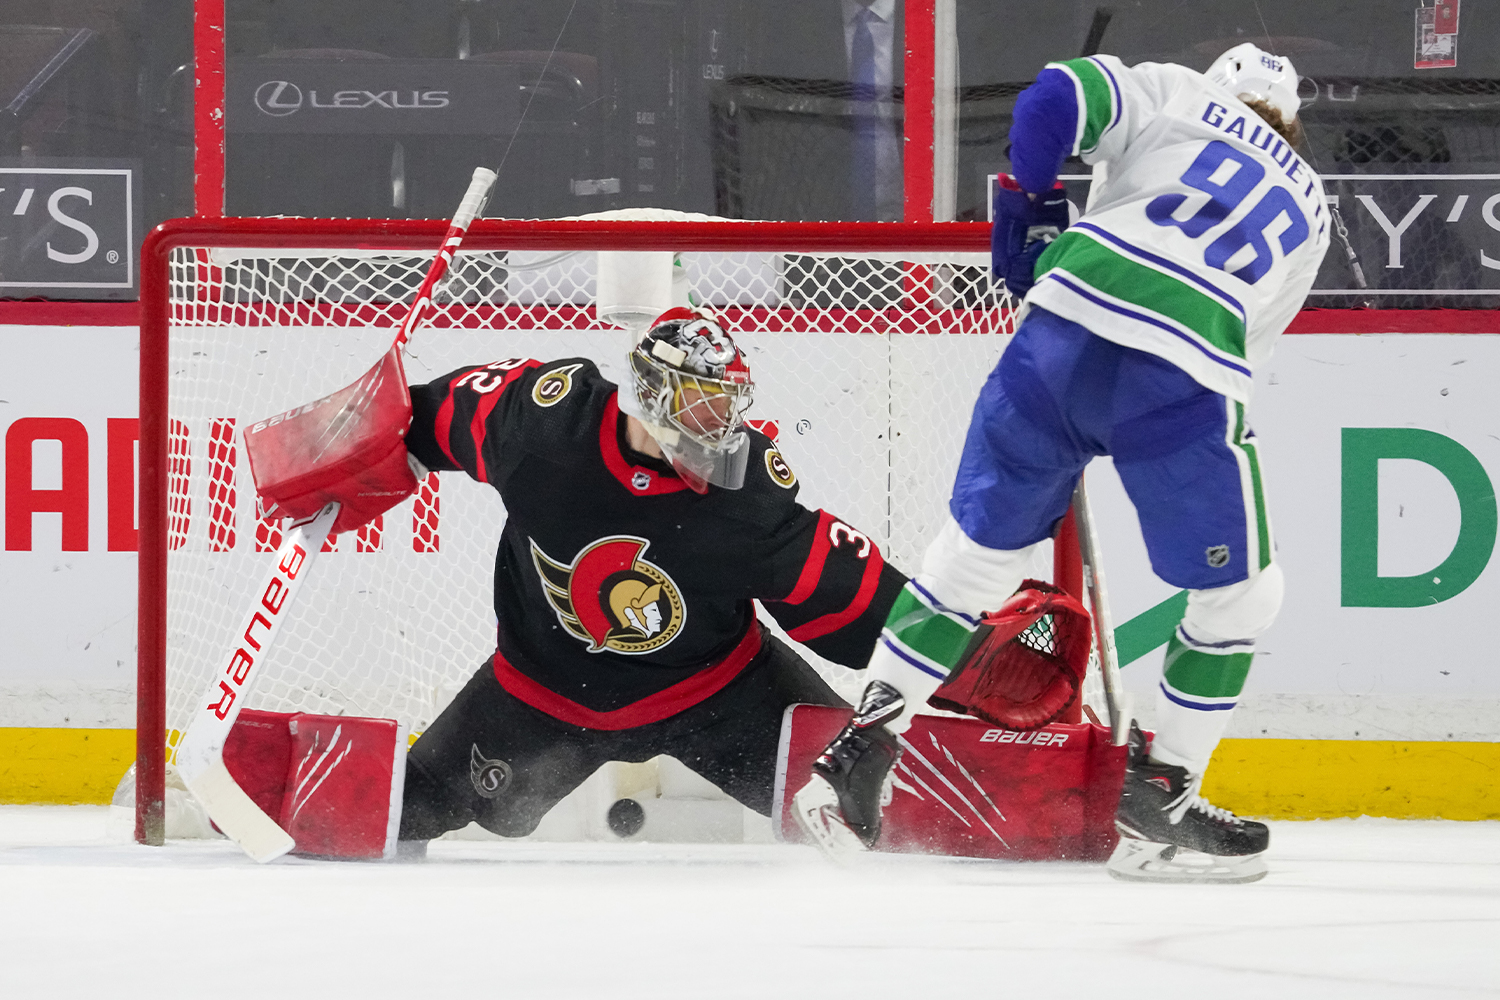 Adam Gaudette #96 of the Vancouver Canucks scores the shootout winning goal against Filip Gustavsson #32 of the Ottawa Senators at Canadian Tire Centre on March 17, 2021